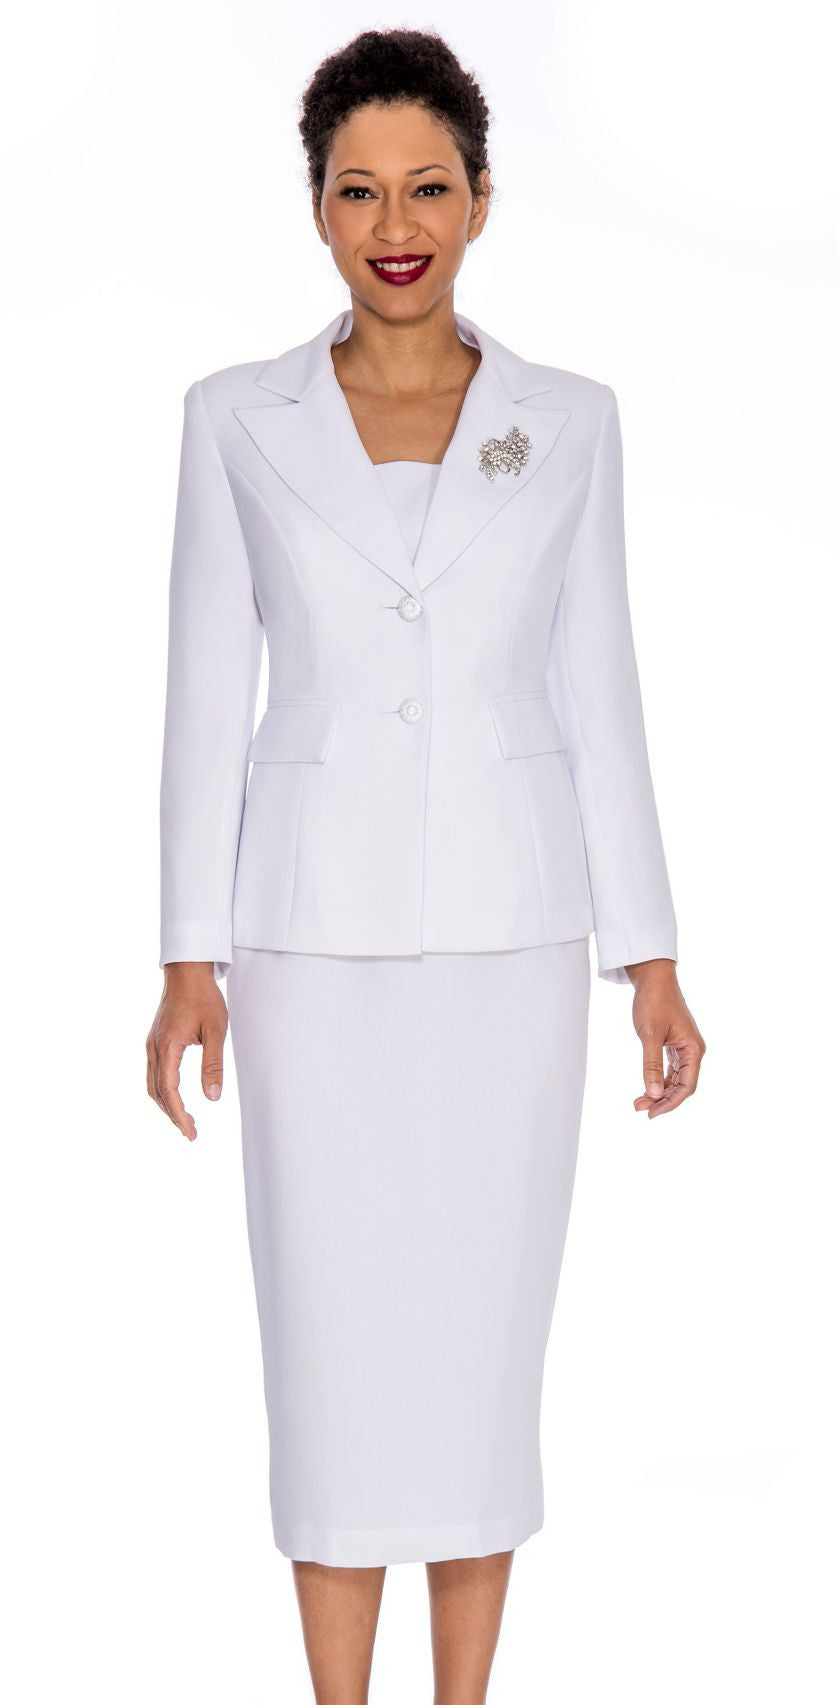 Giovanna Church Suit 0710-White - Church Suits For Less